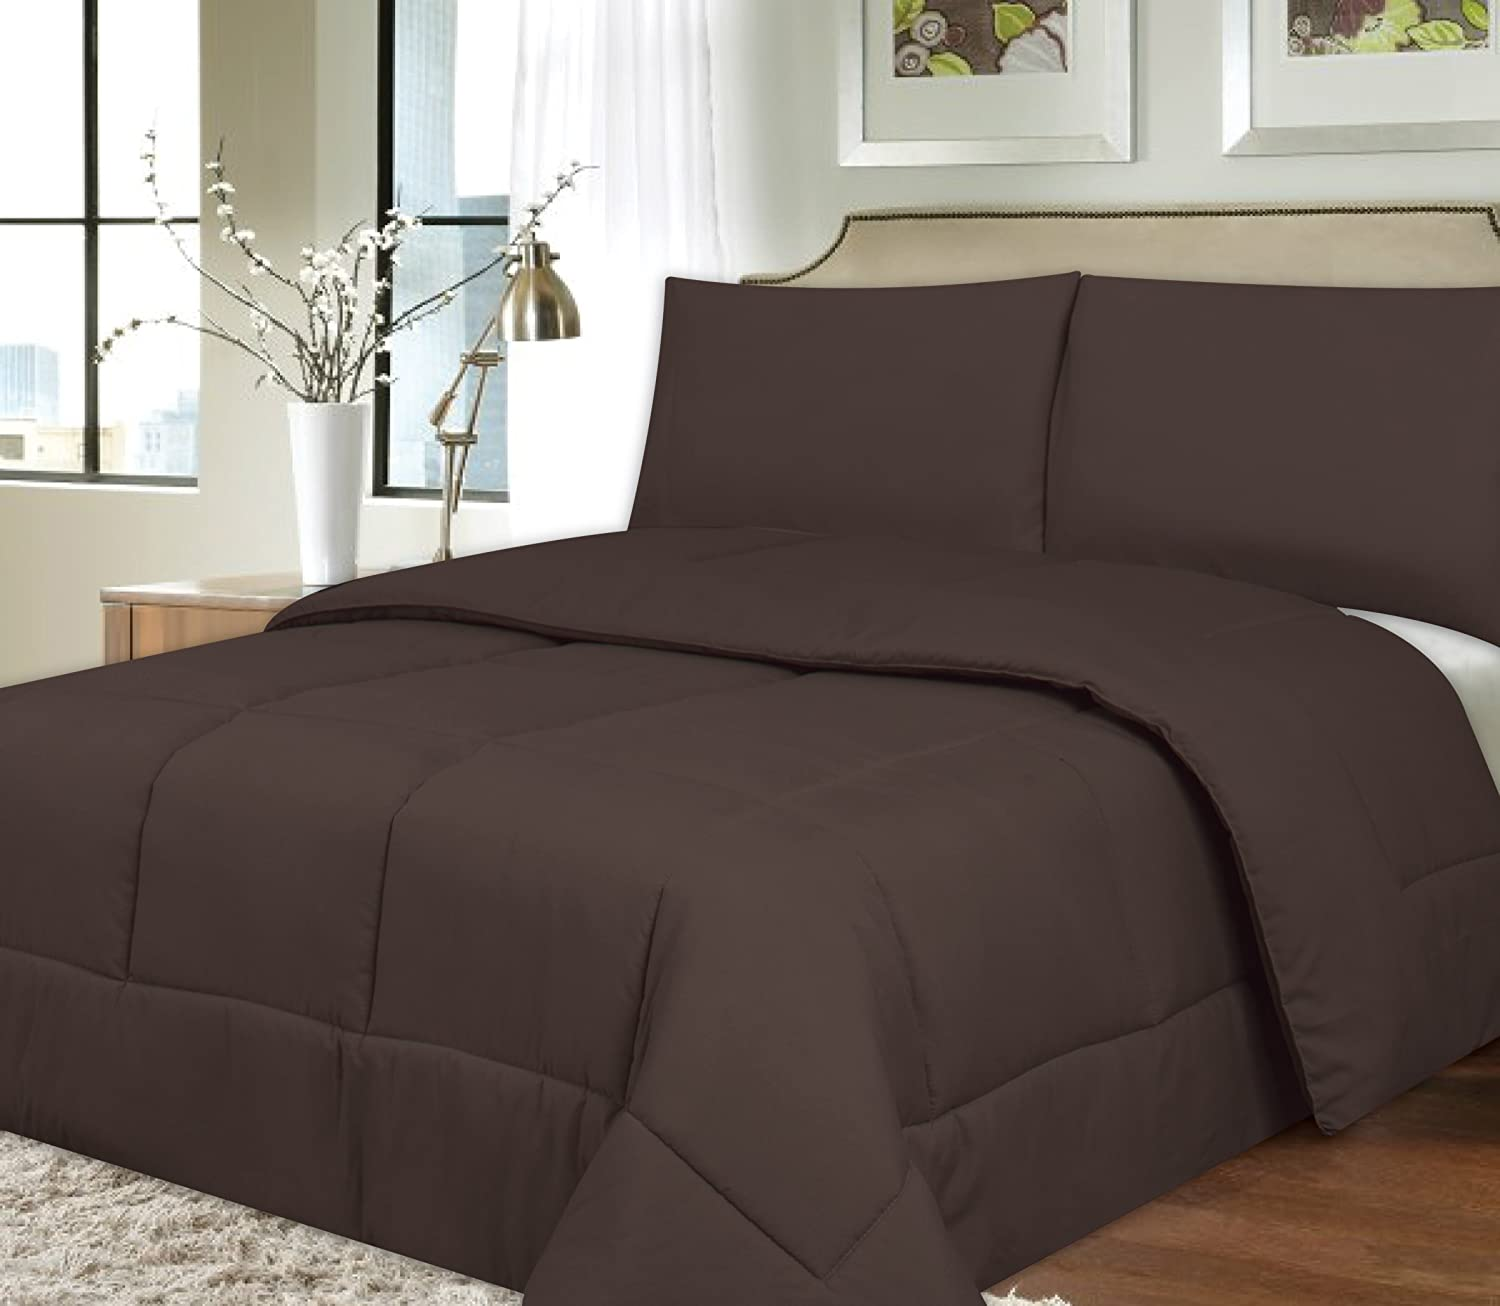 Gray Sweet Home Collection Down Alternative Polyester Comforter Box Stitch Microfiber Bedding Full